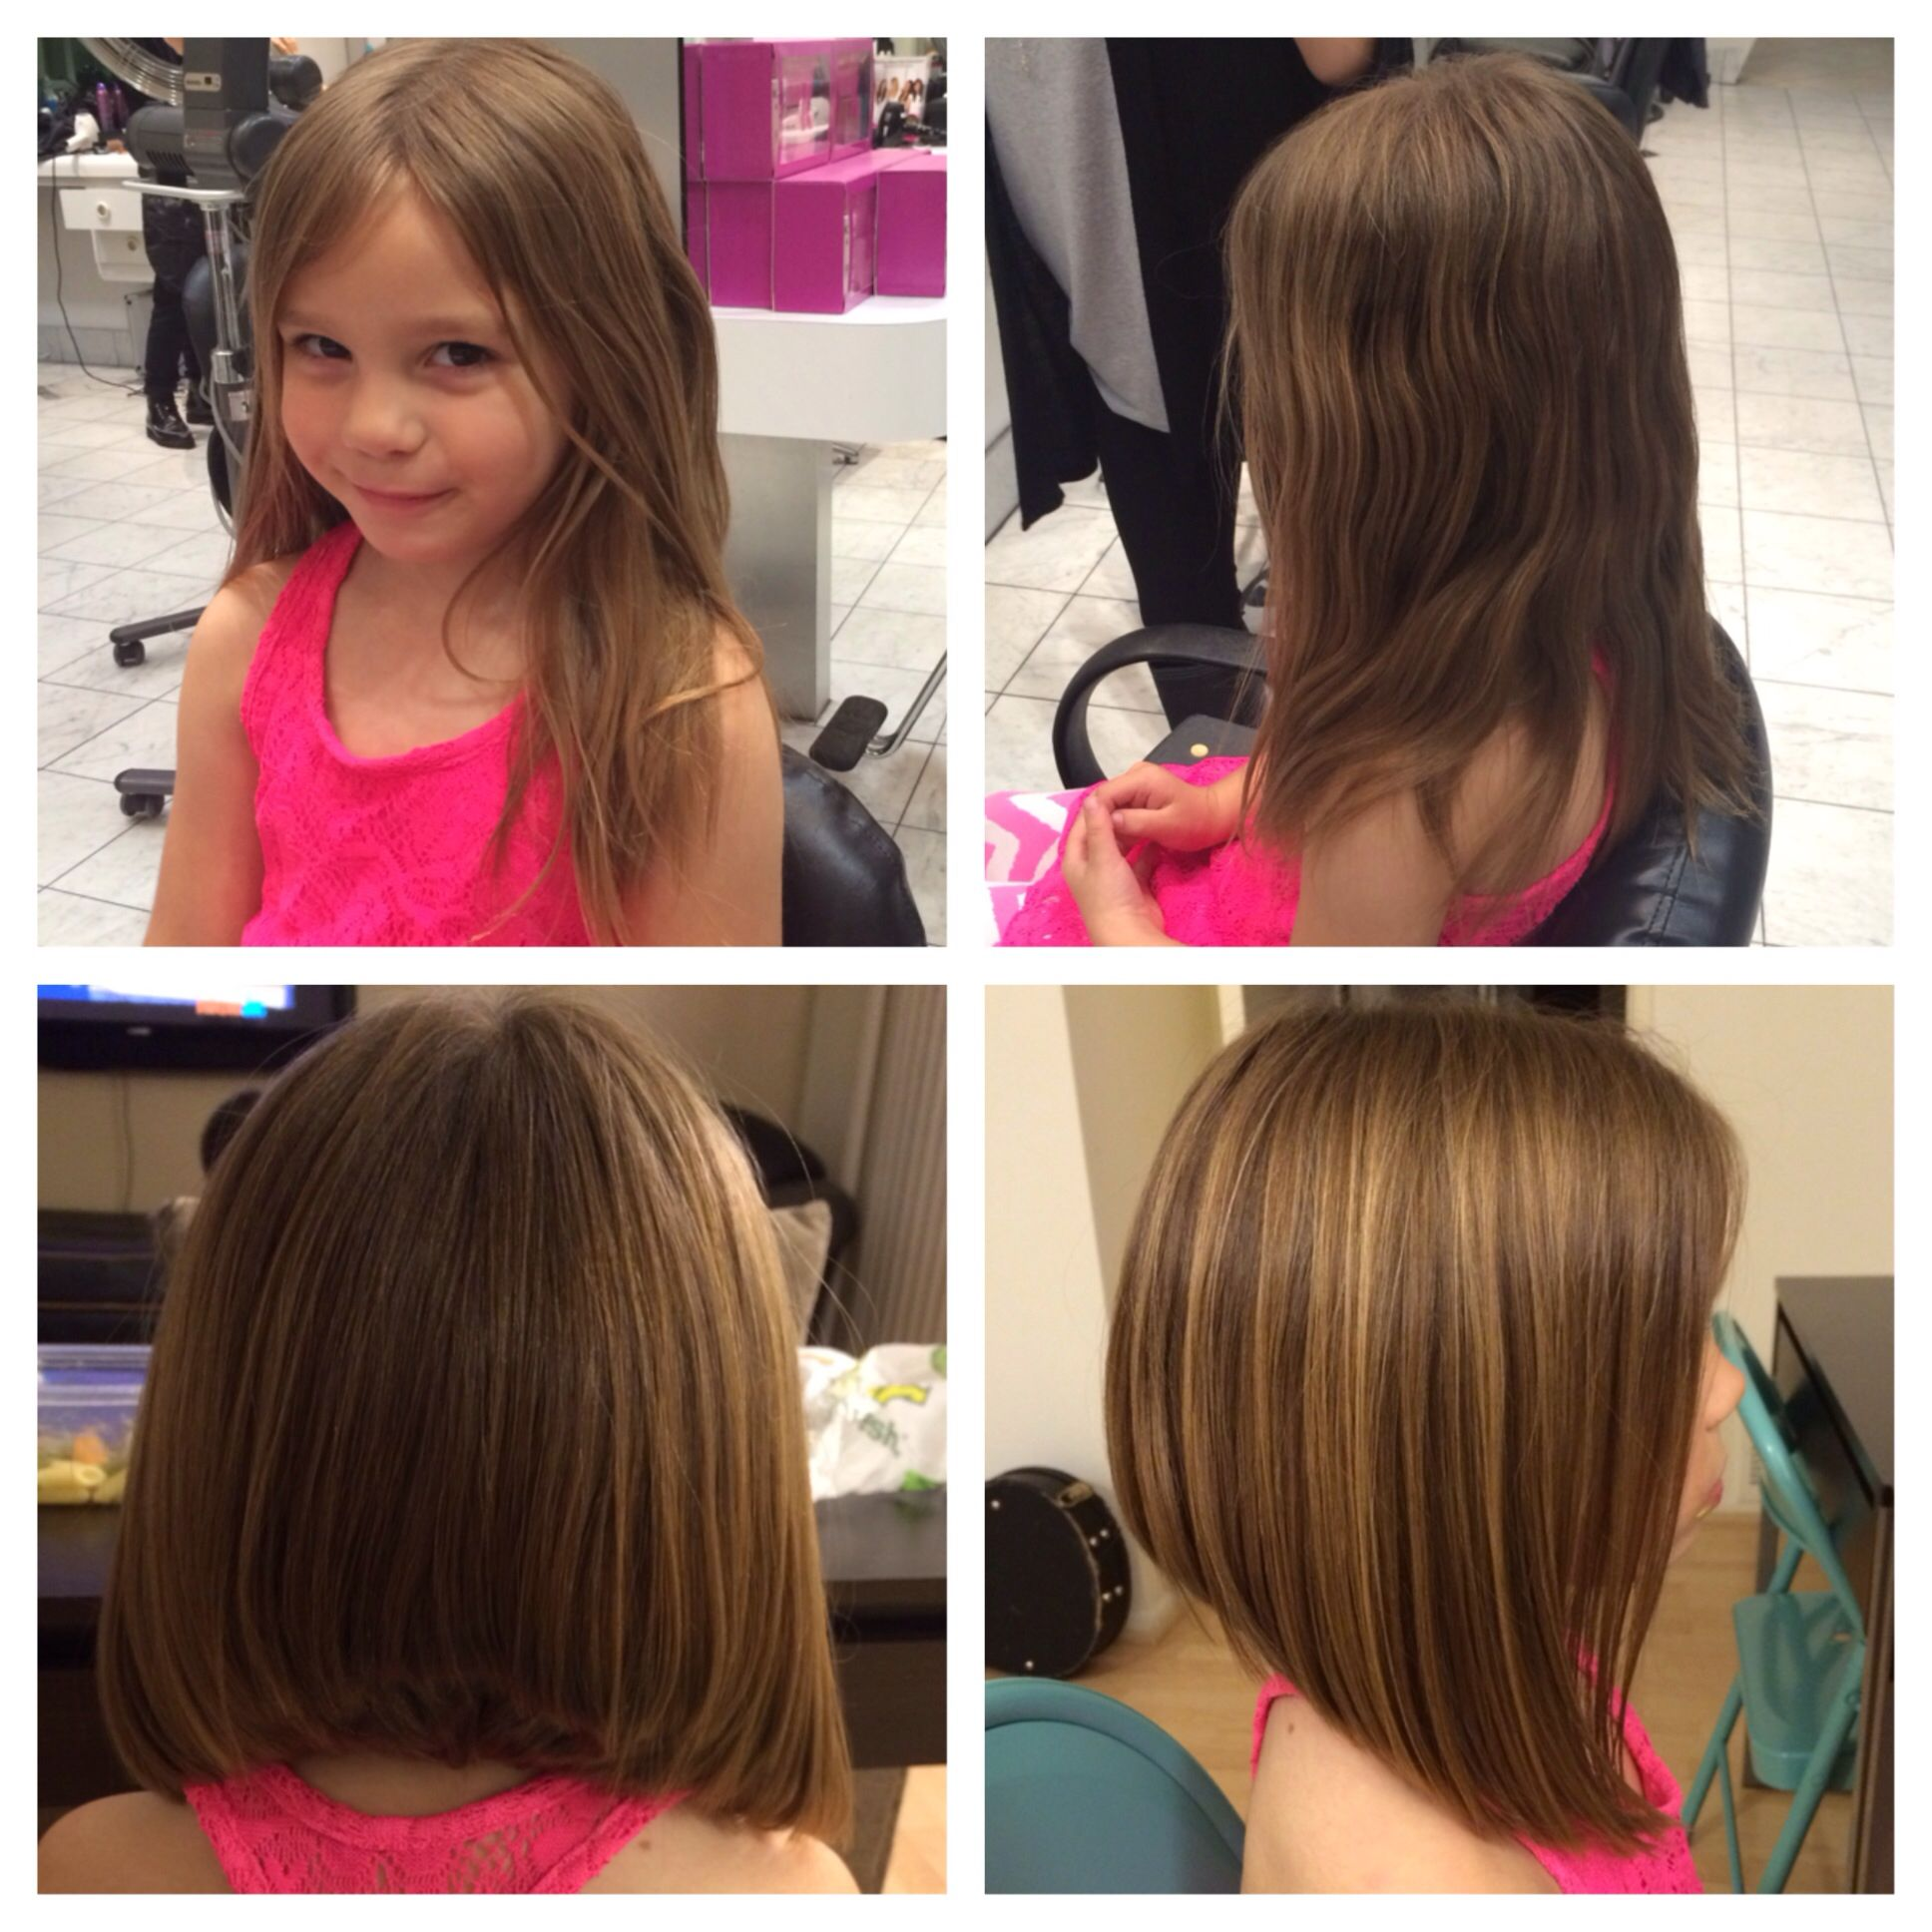 little girls hair cuts. long isn't always easy to care for